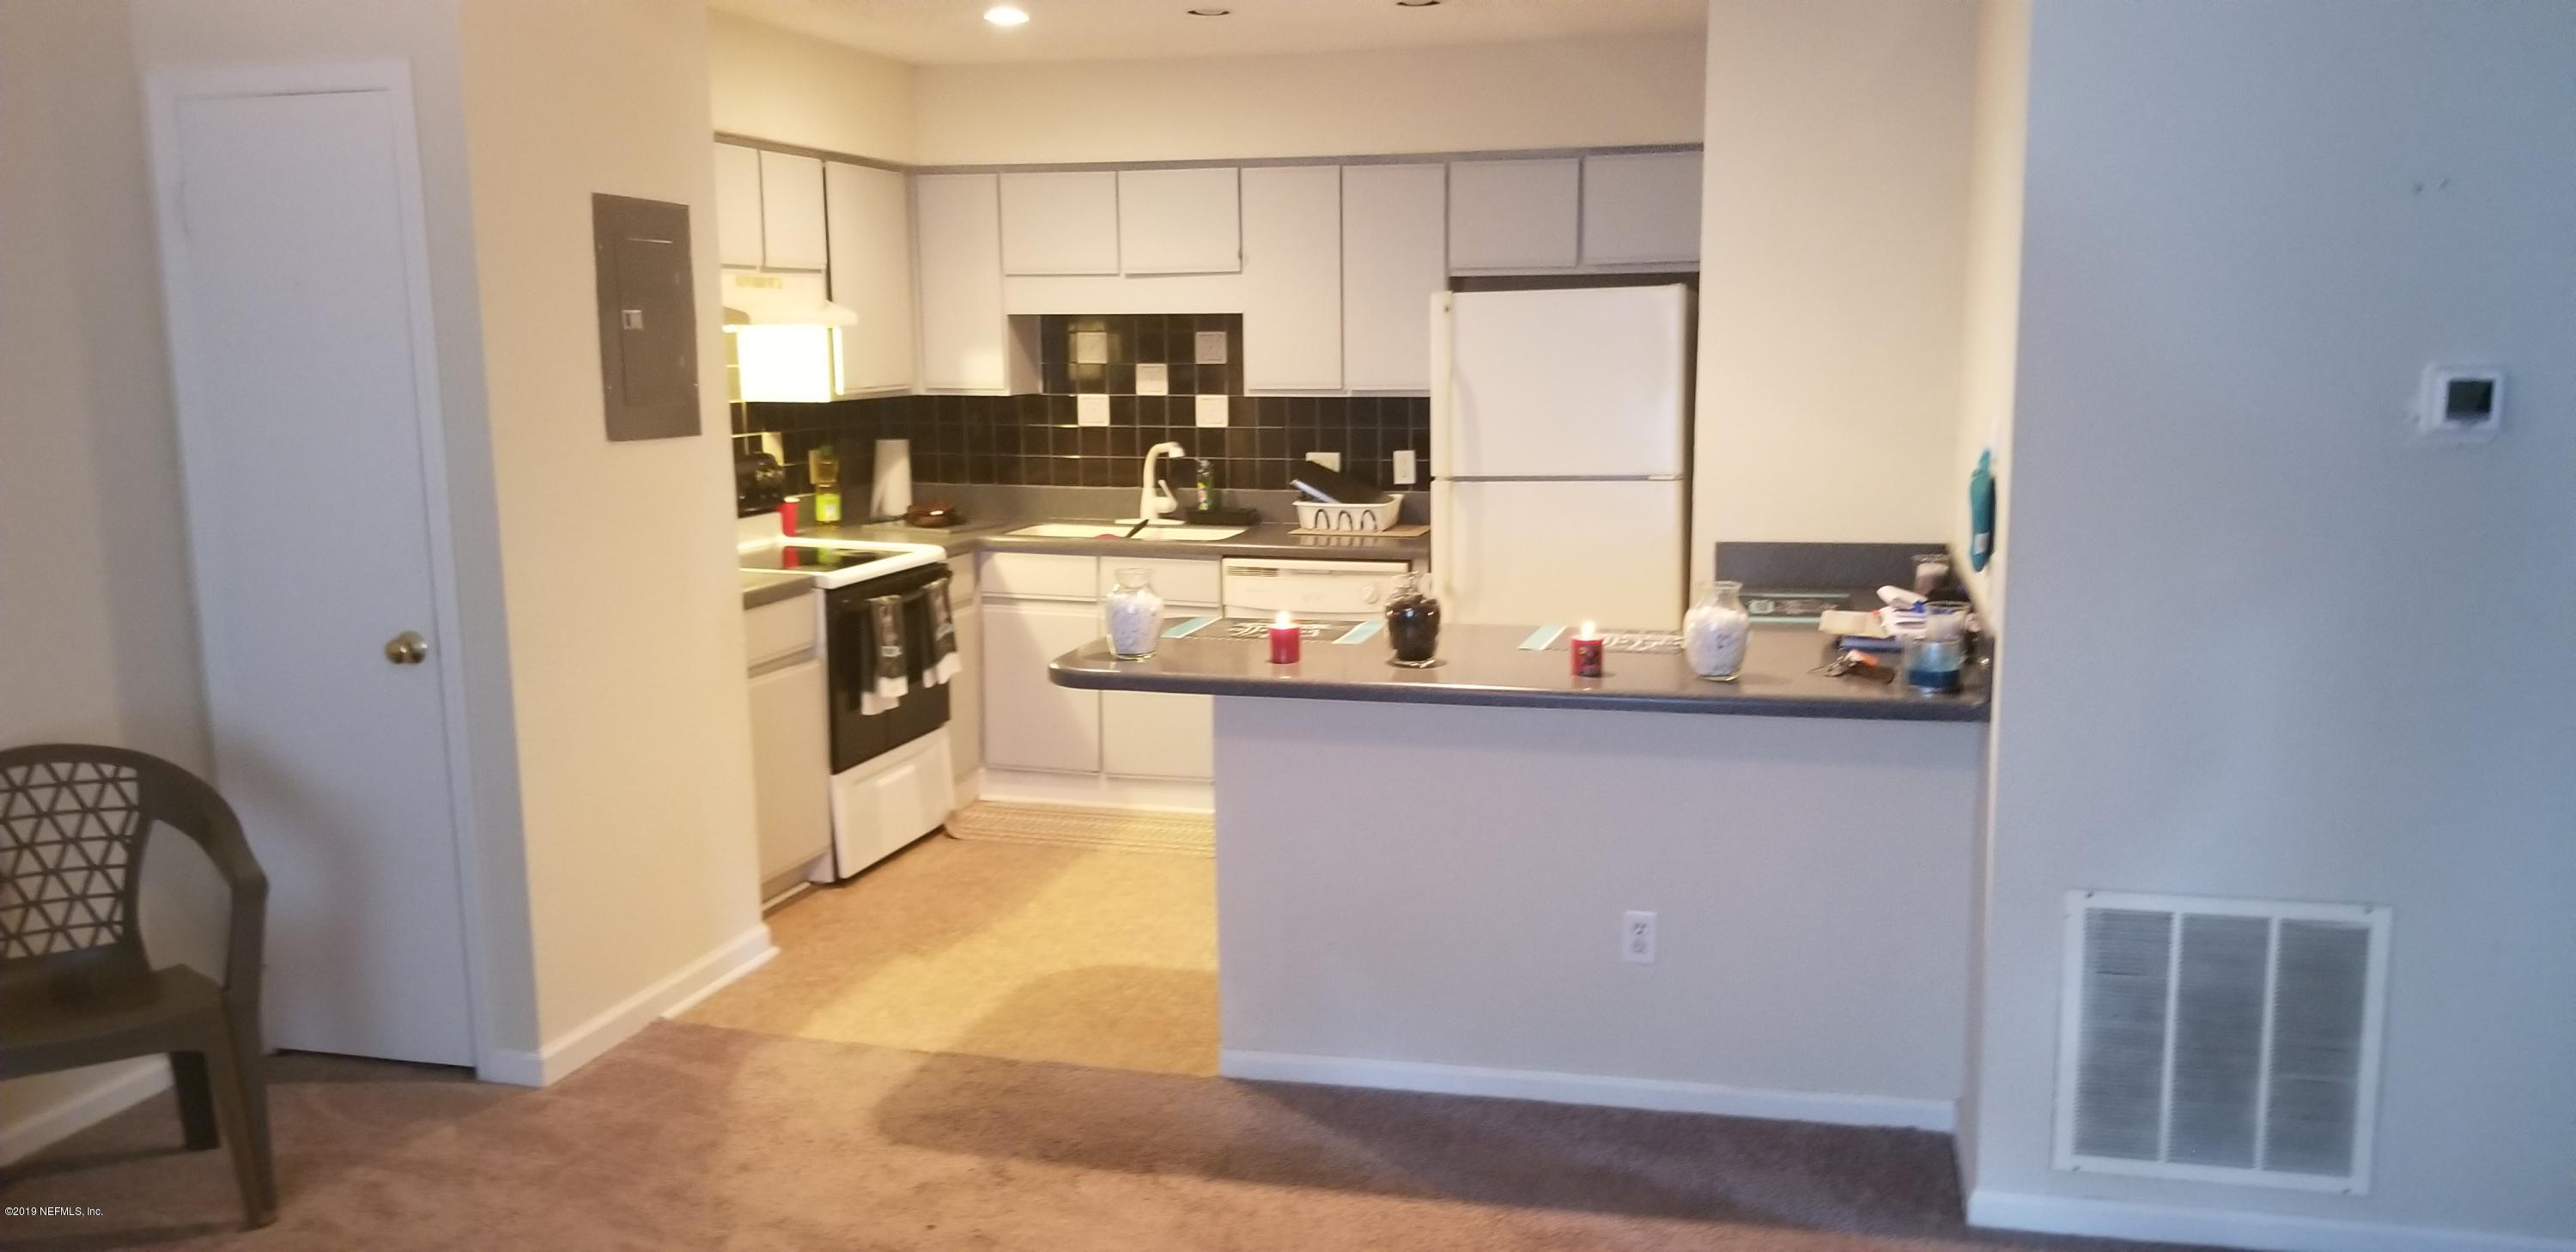 791 ASSISI- JACKSONVILLE- FLORIDA 32233, 2 Bedrooms Bedrooms, ,1 BathroomBathrooms,Condo,For sale,ASSISI,1009293